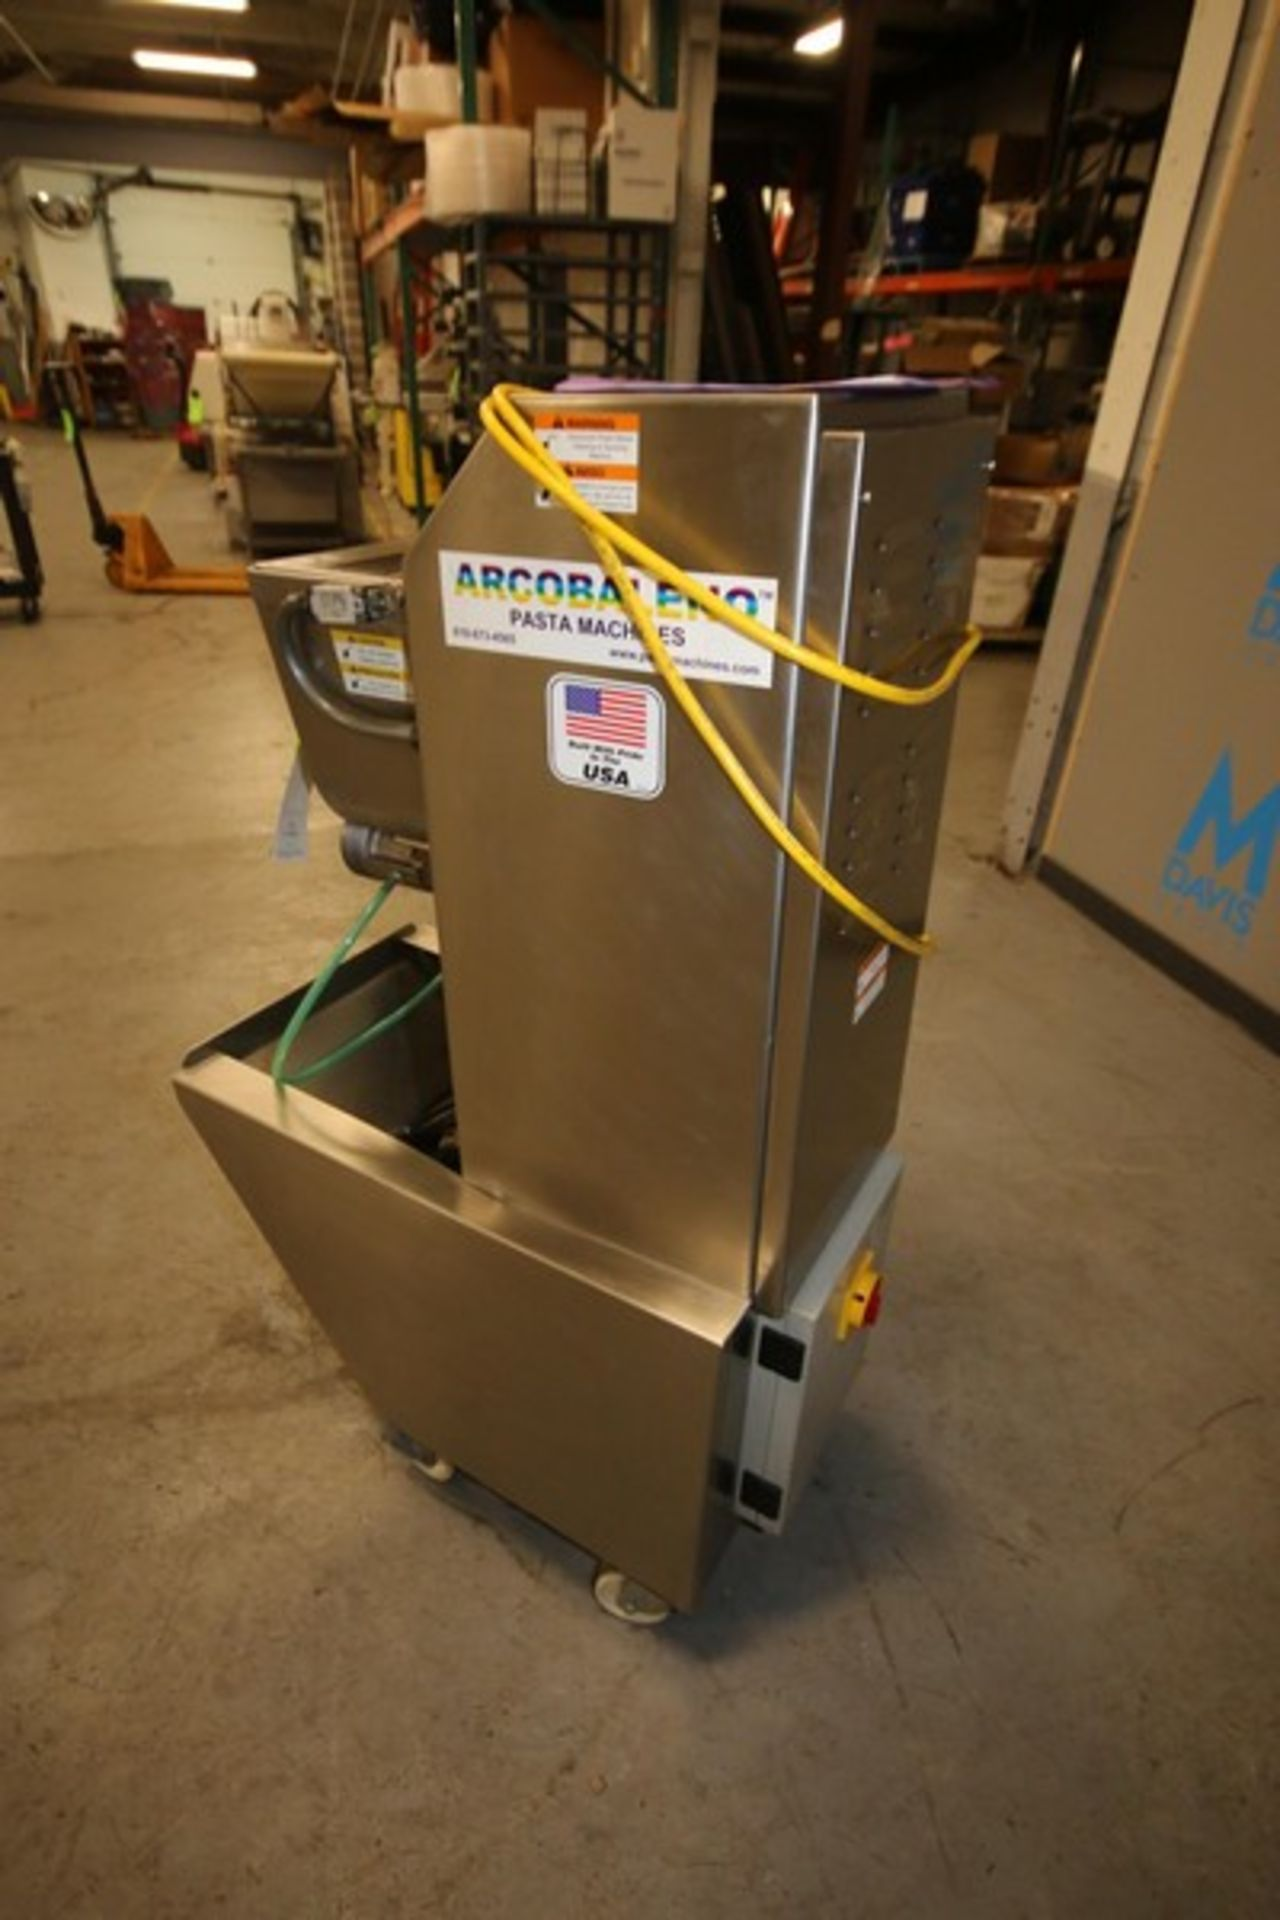 Lot 2 - Arcobaleno Pasta Machines 50 lb. Pasta Extruder, Model EX18, S/N 7003, 220V (IN#65954) (LOCATED AT